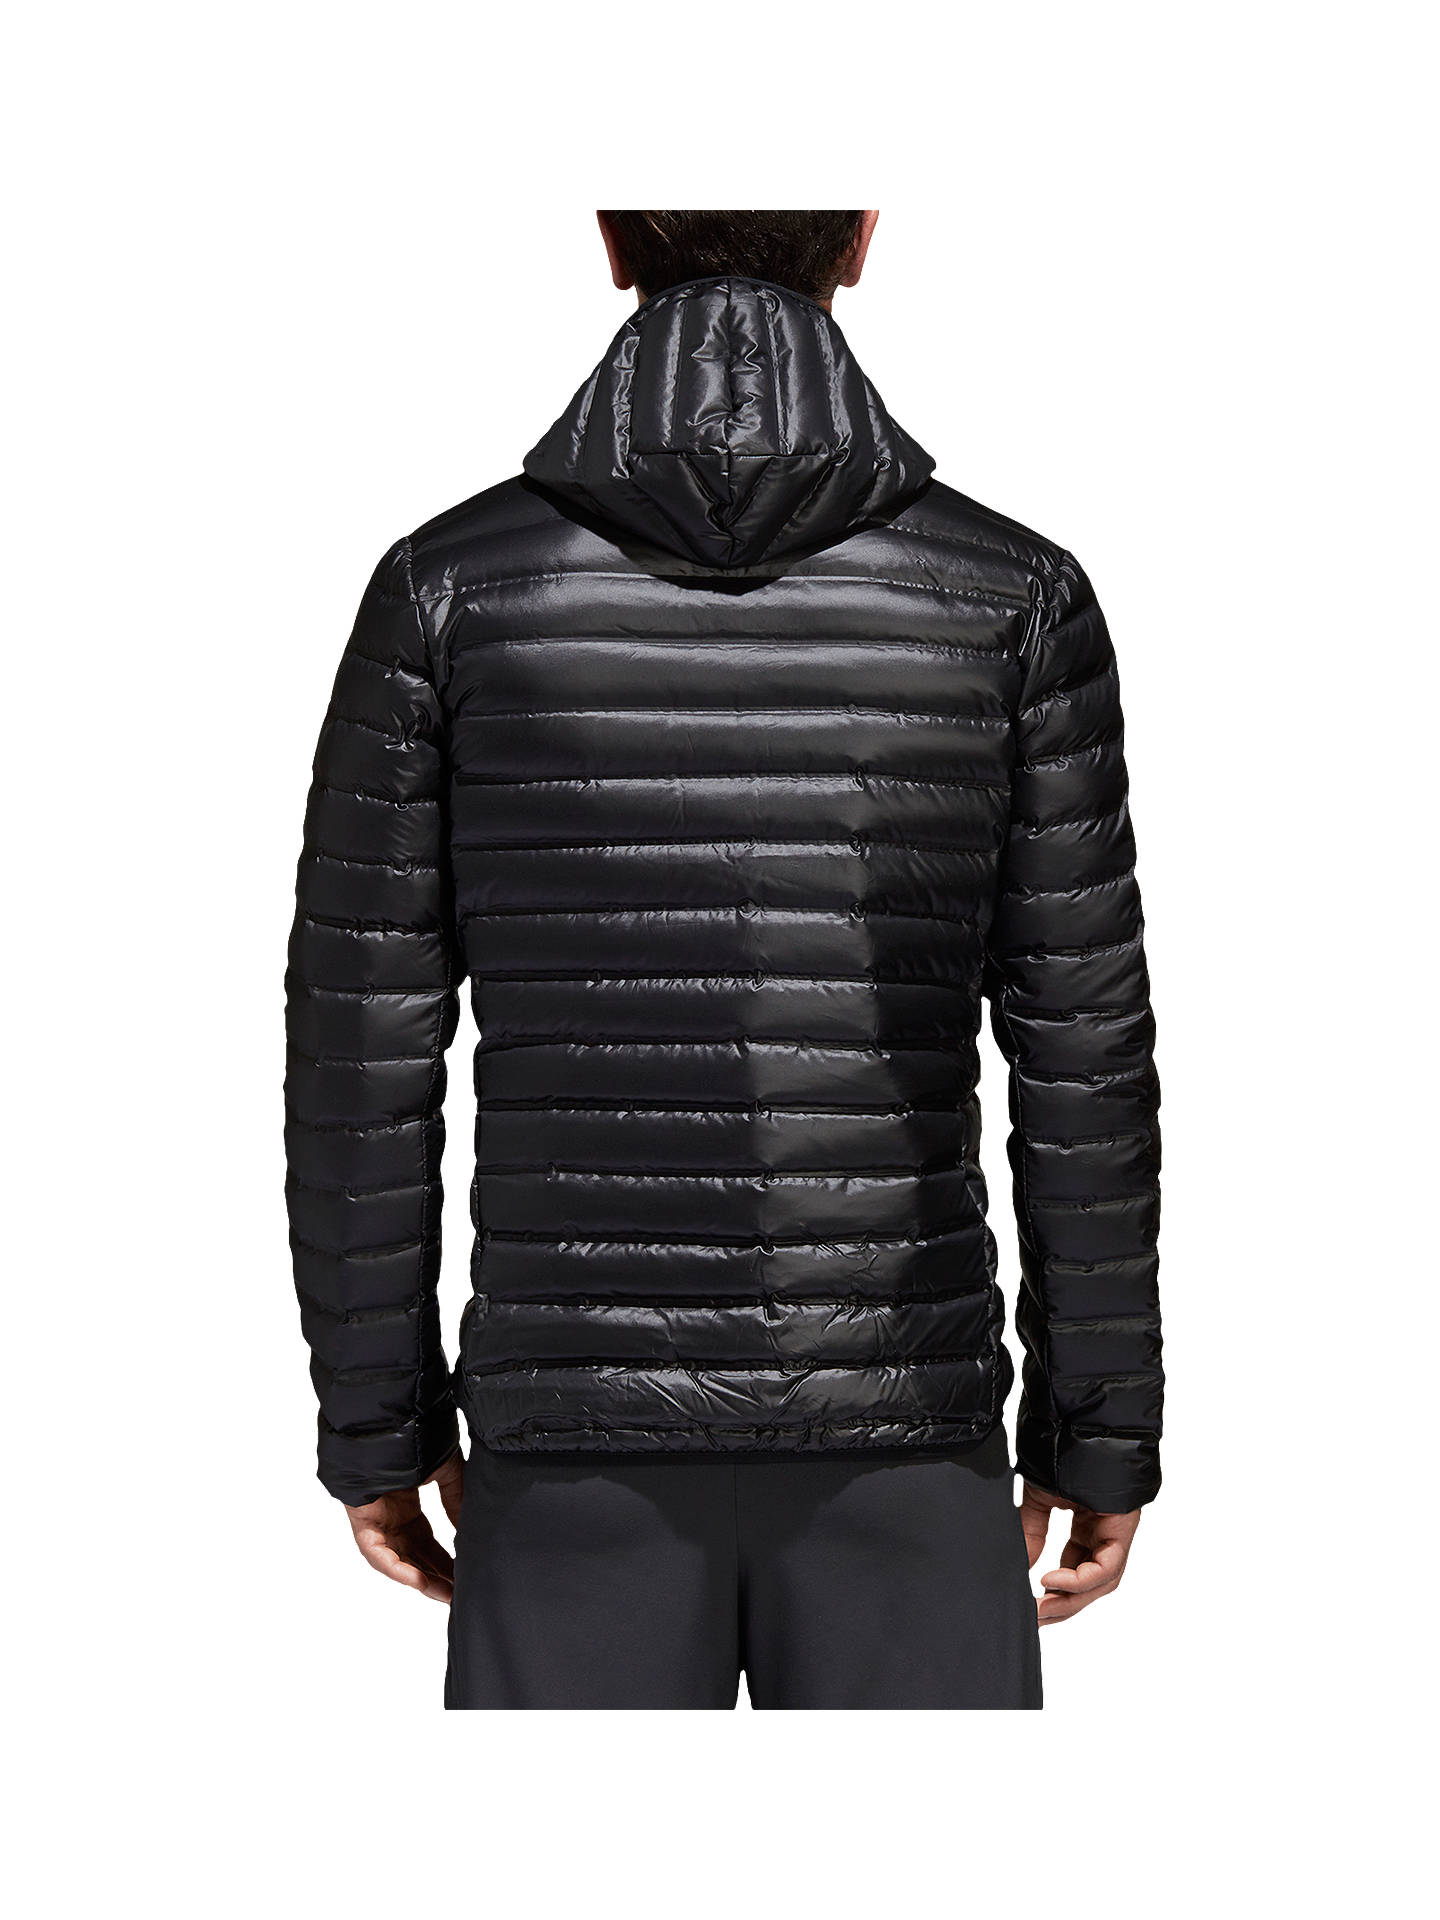 Buyadidas Varilite Down Long Sleeve Hooded Men's Puffer Jacket, Black, S Online at johnlewis.com